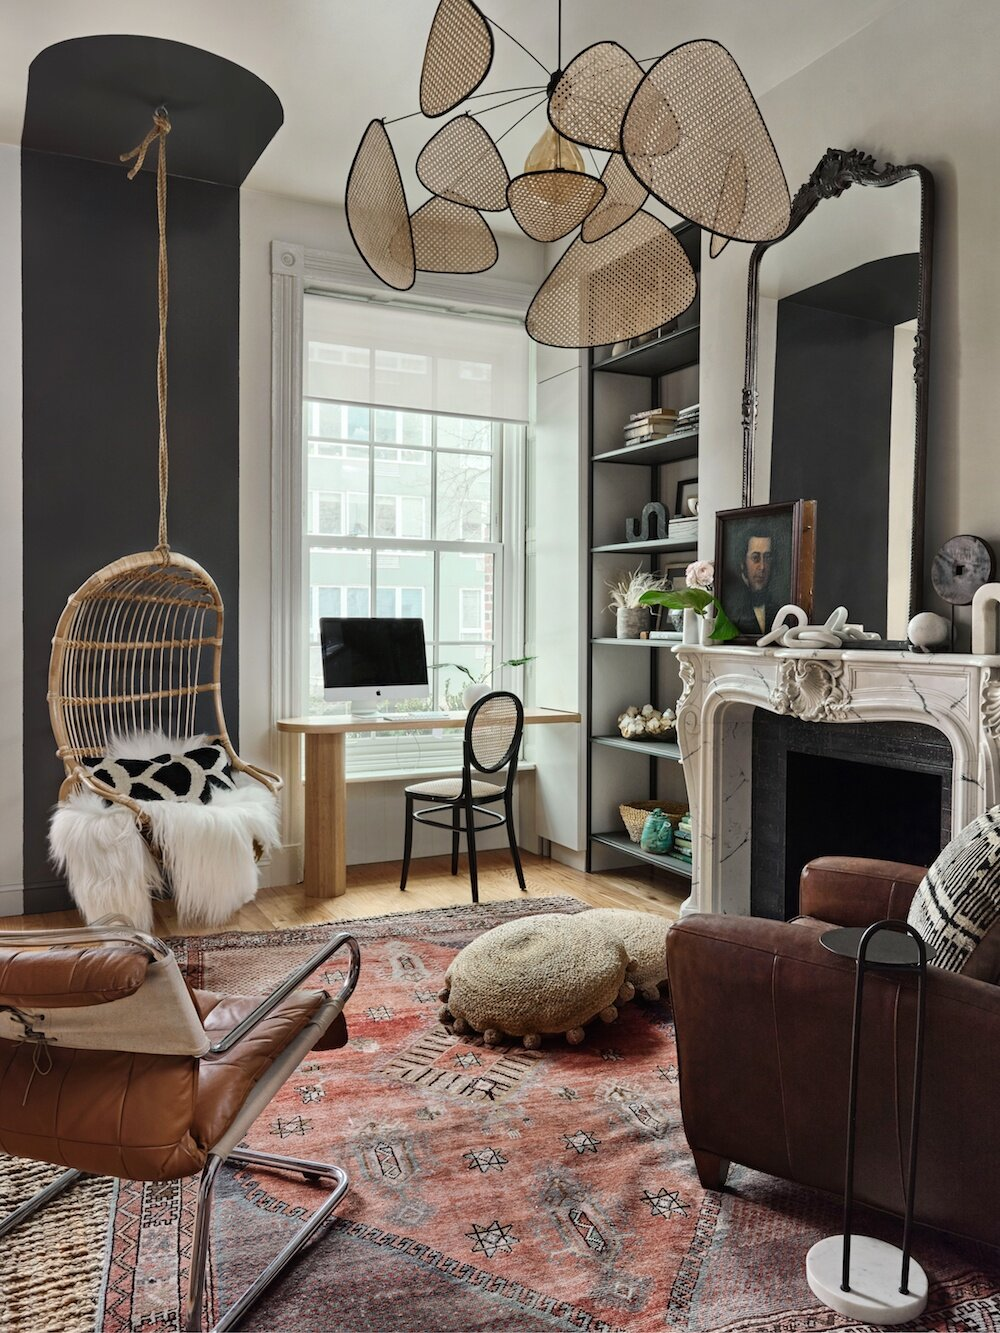 A Warm Brooklyn Brownstone Filled With Interesting Home Decor Ideas The Nordroom